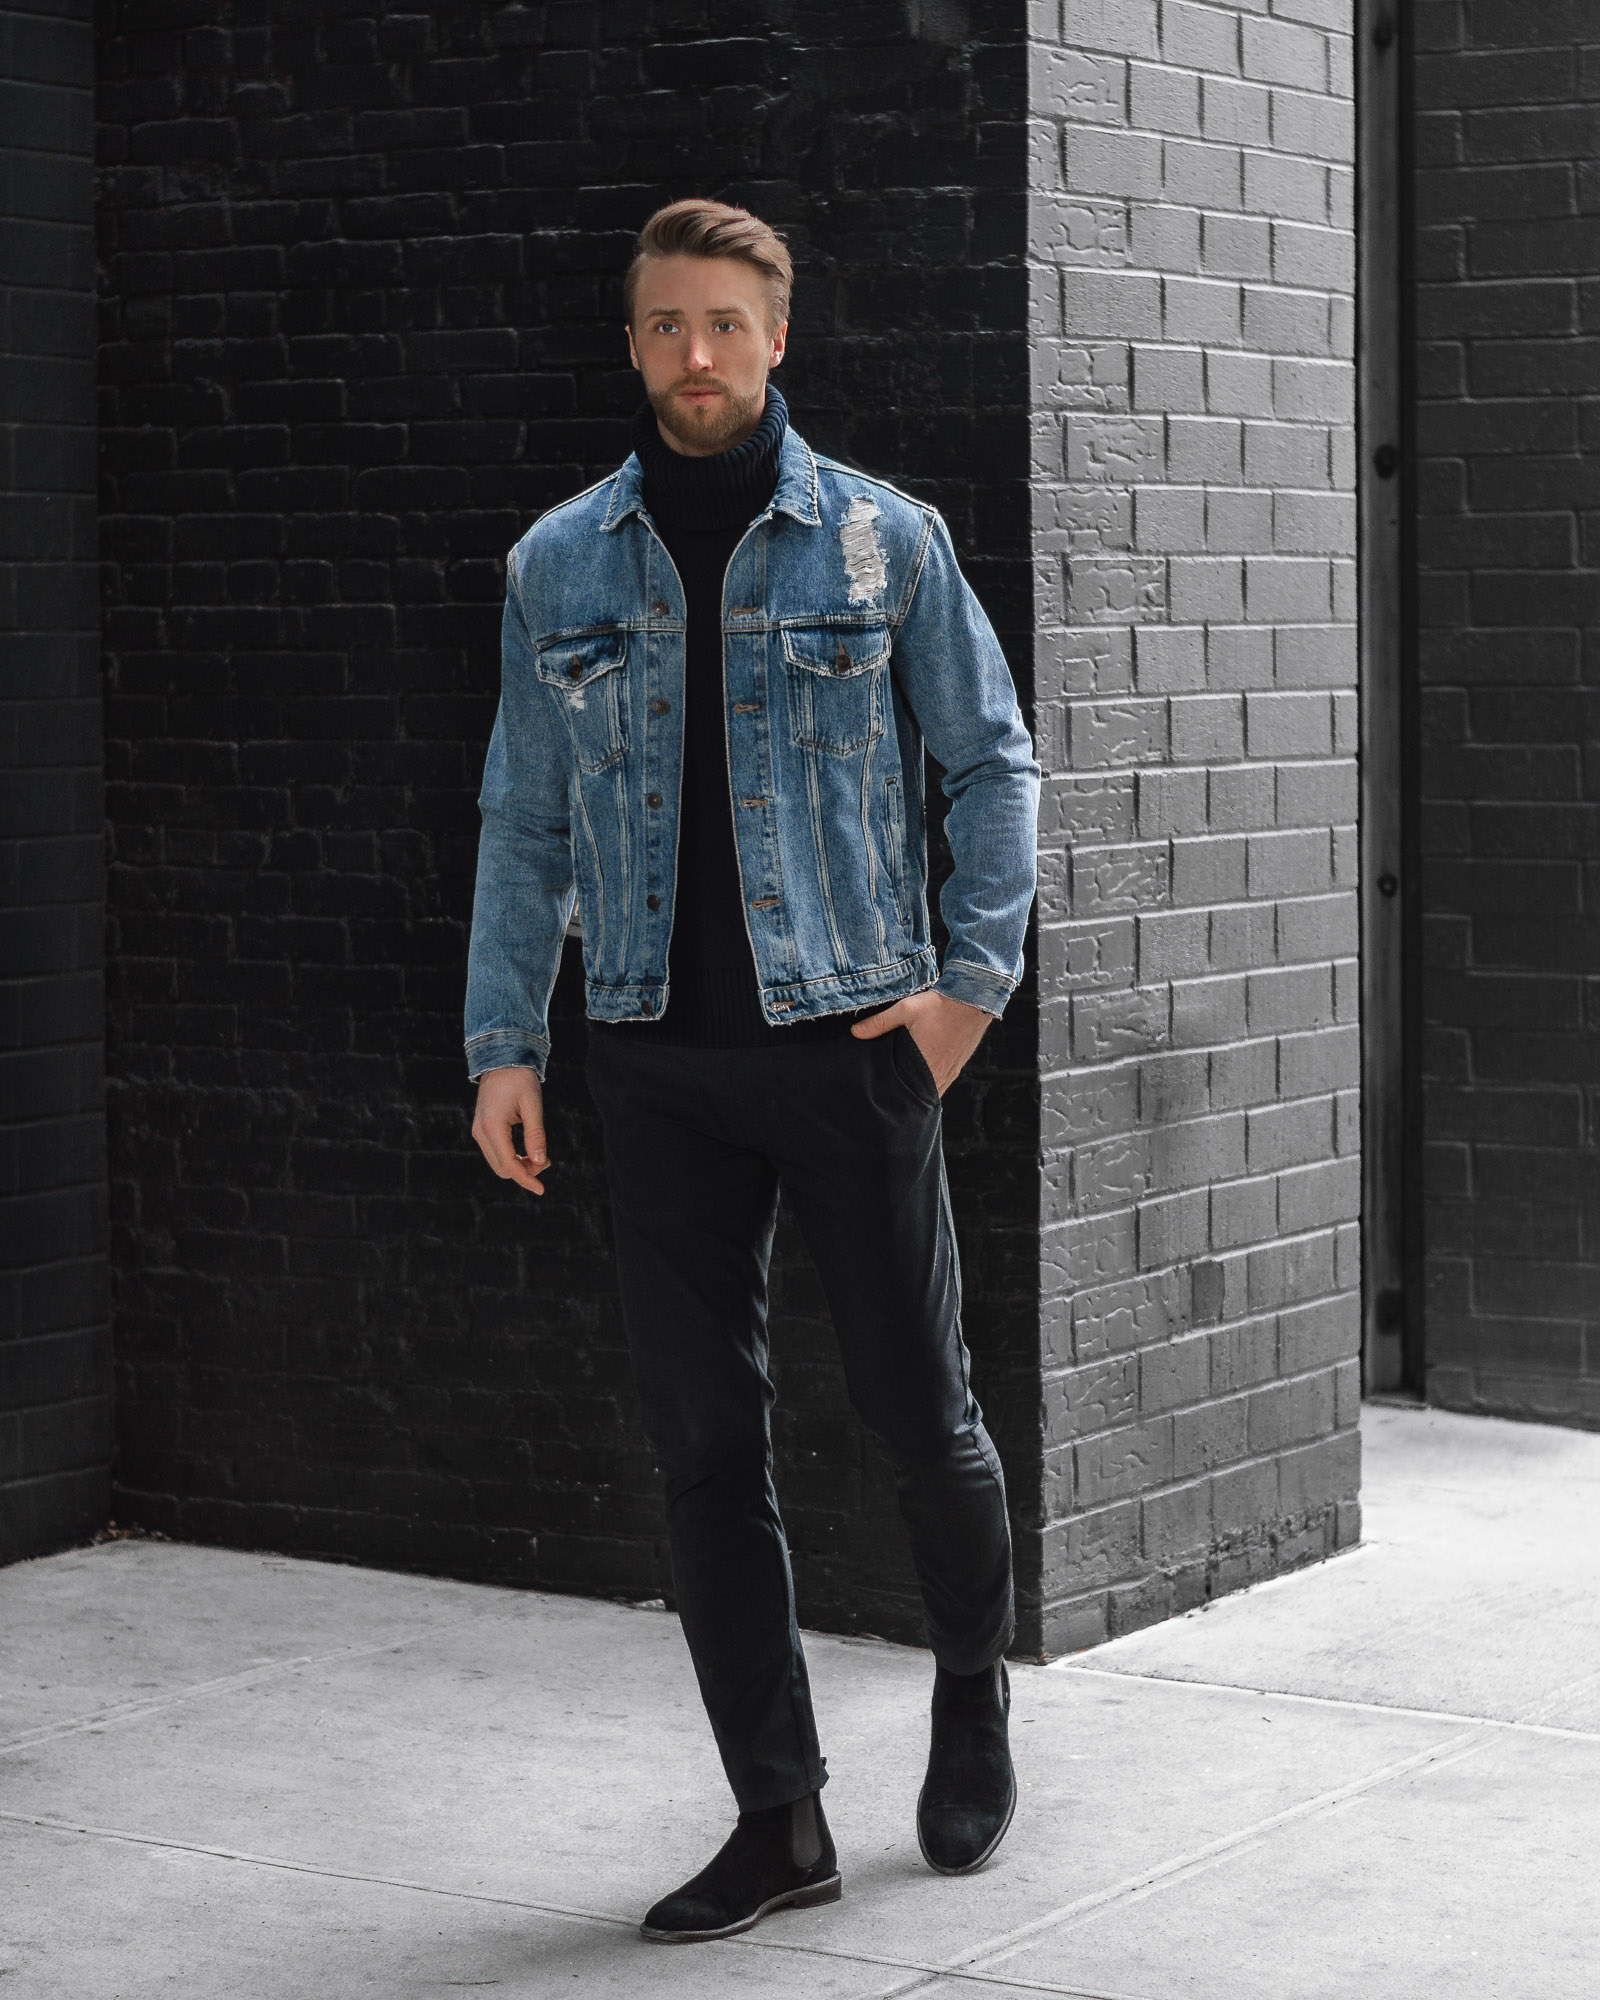 denim jacket the cuff men's style